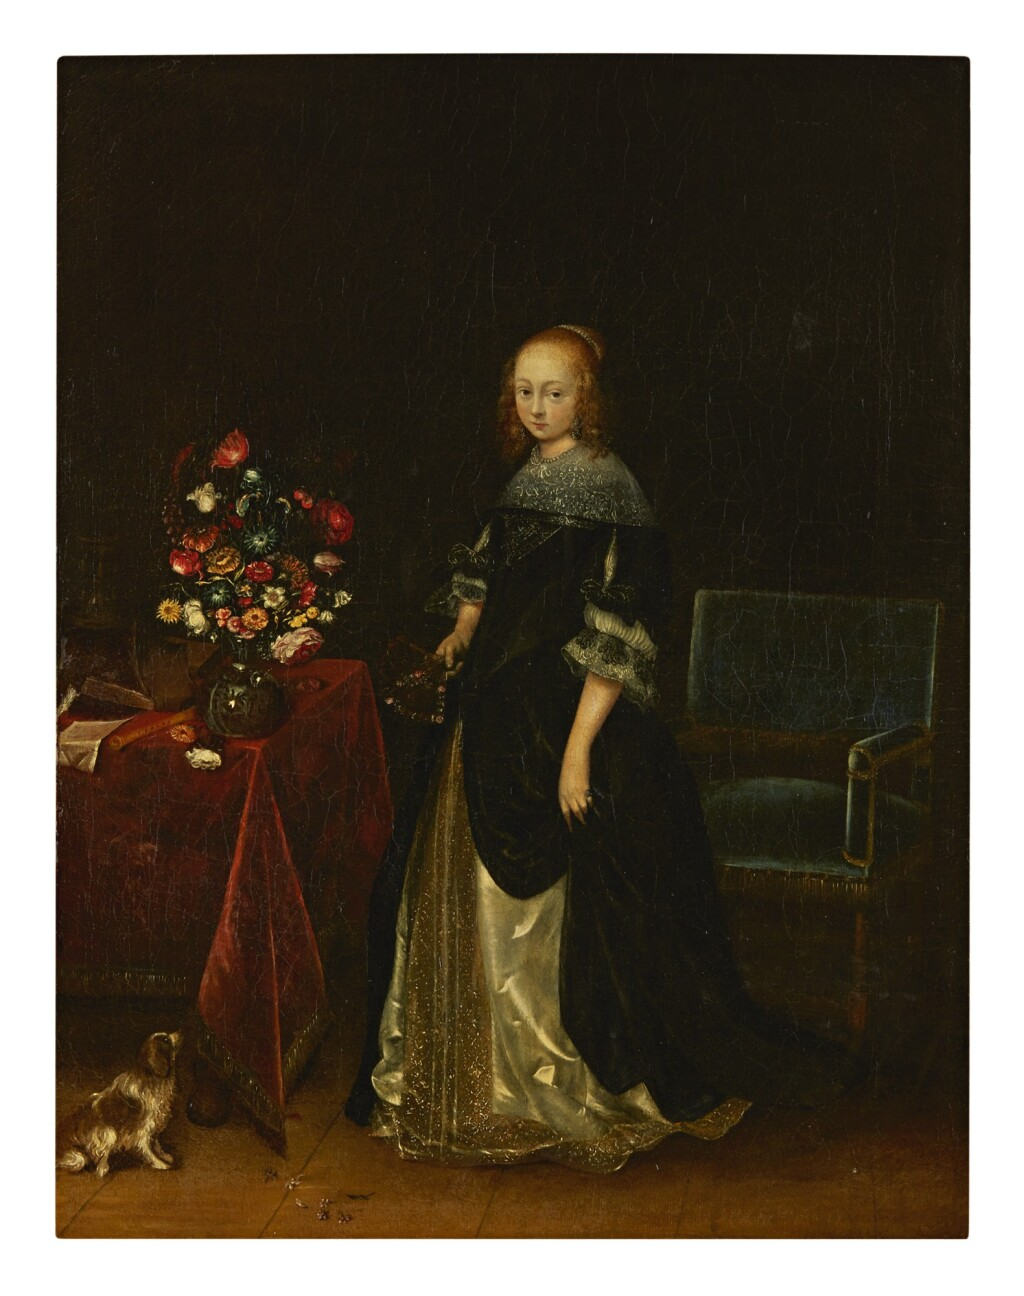 FOLLOWER OF GERARD TER BORCH   PORTRAIT OF A YOUNG WOMAN, FULL-LENGTH, STANDING AT A TABLE, WITH A DOG